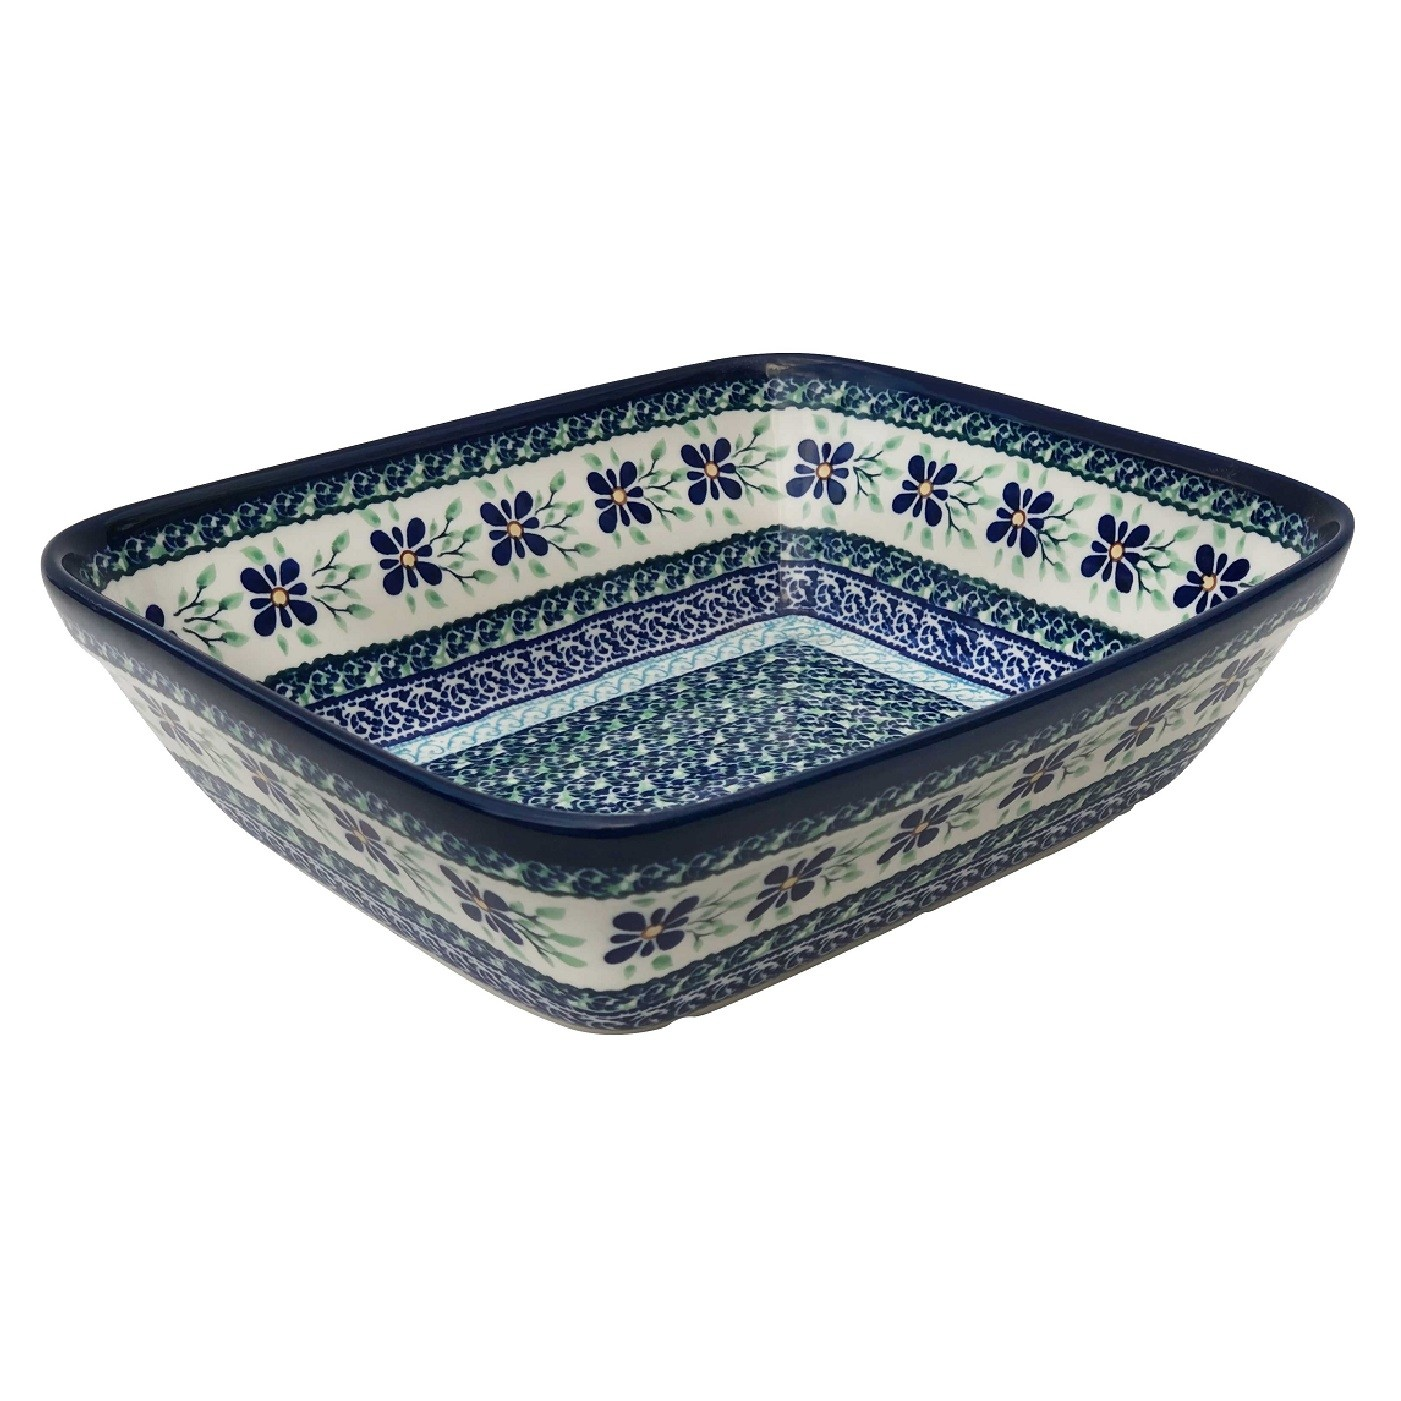 "Pottery Avenue Dearest Friend 10"" Rectangular Stoneware Bakeware Dish"